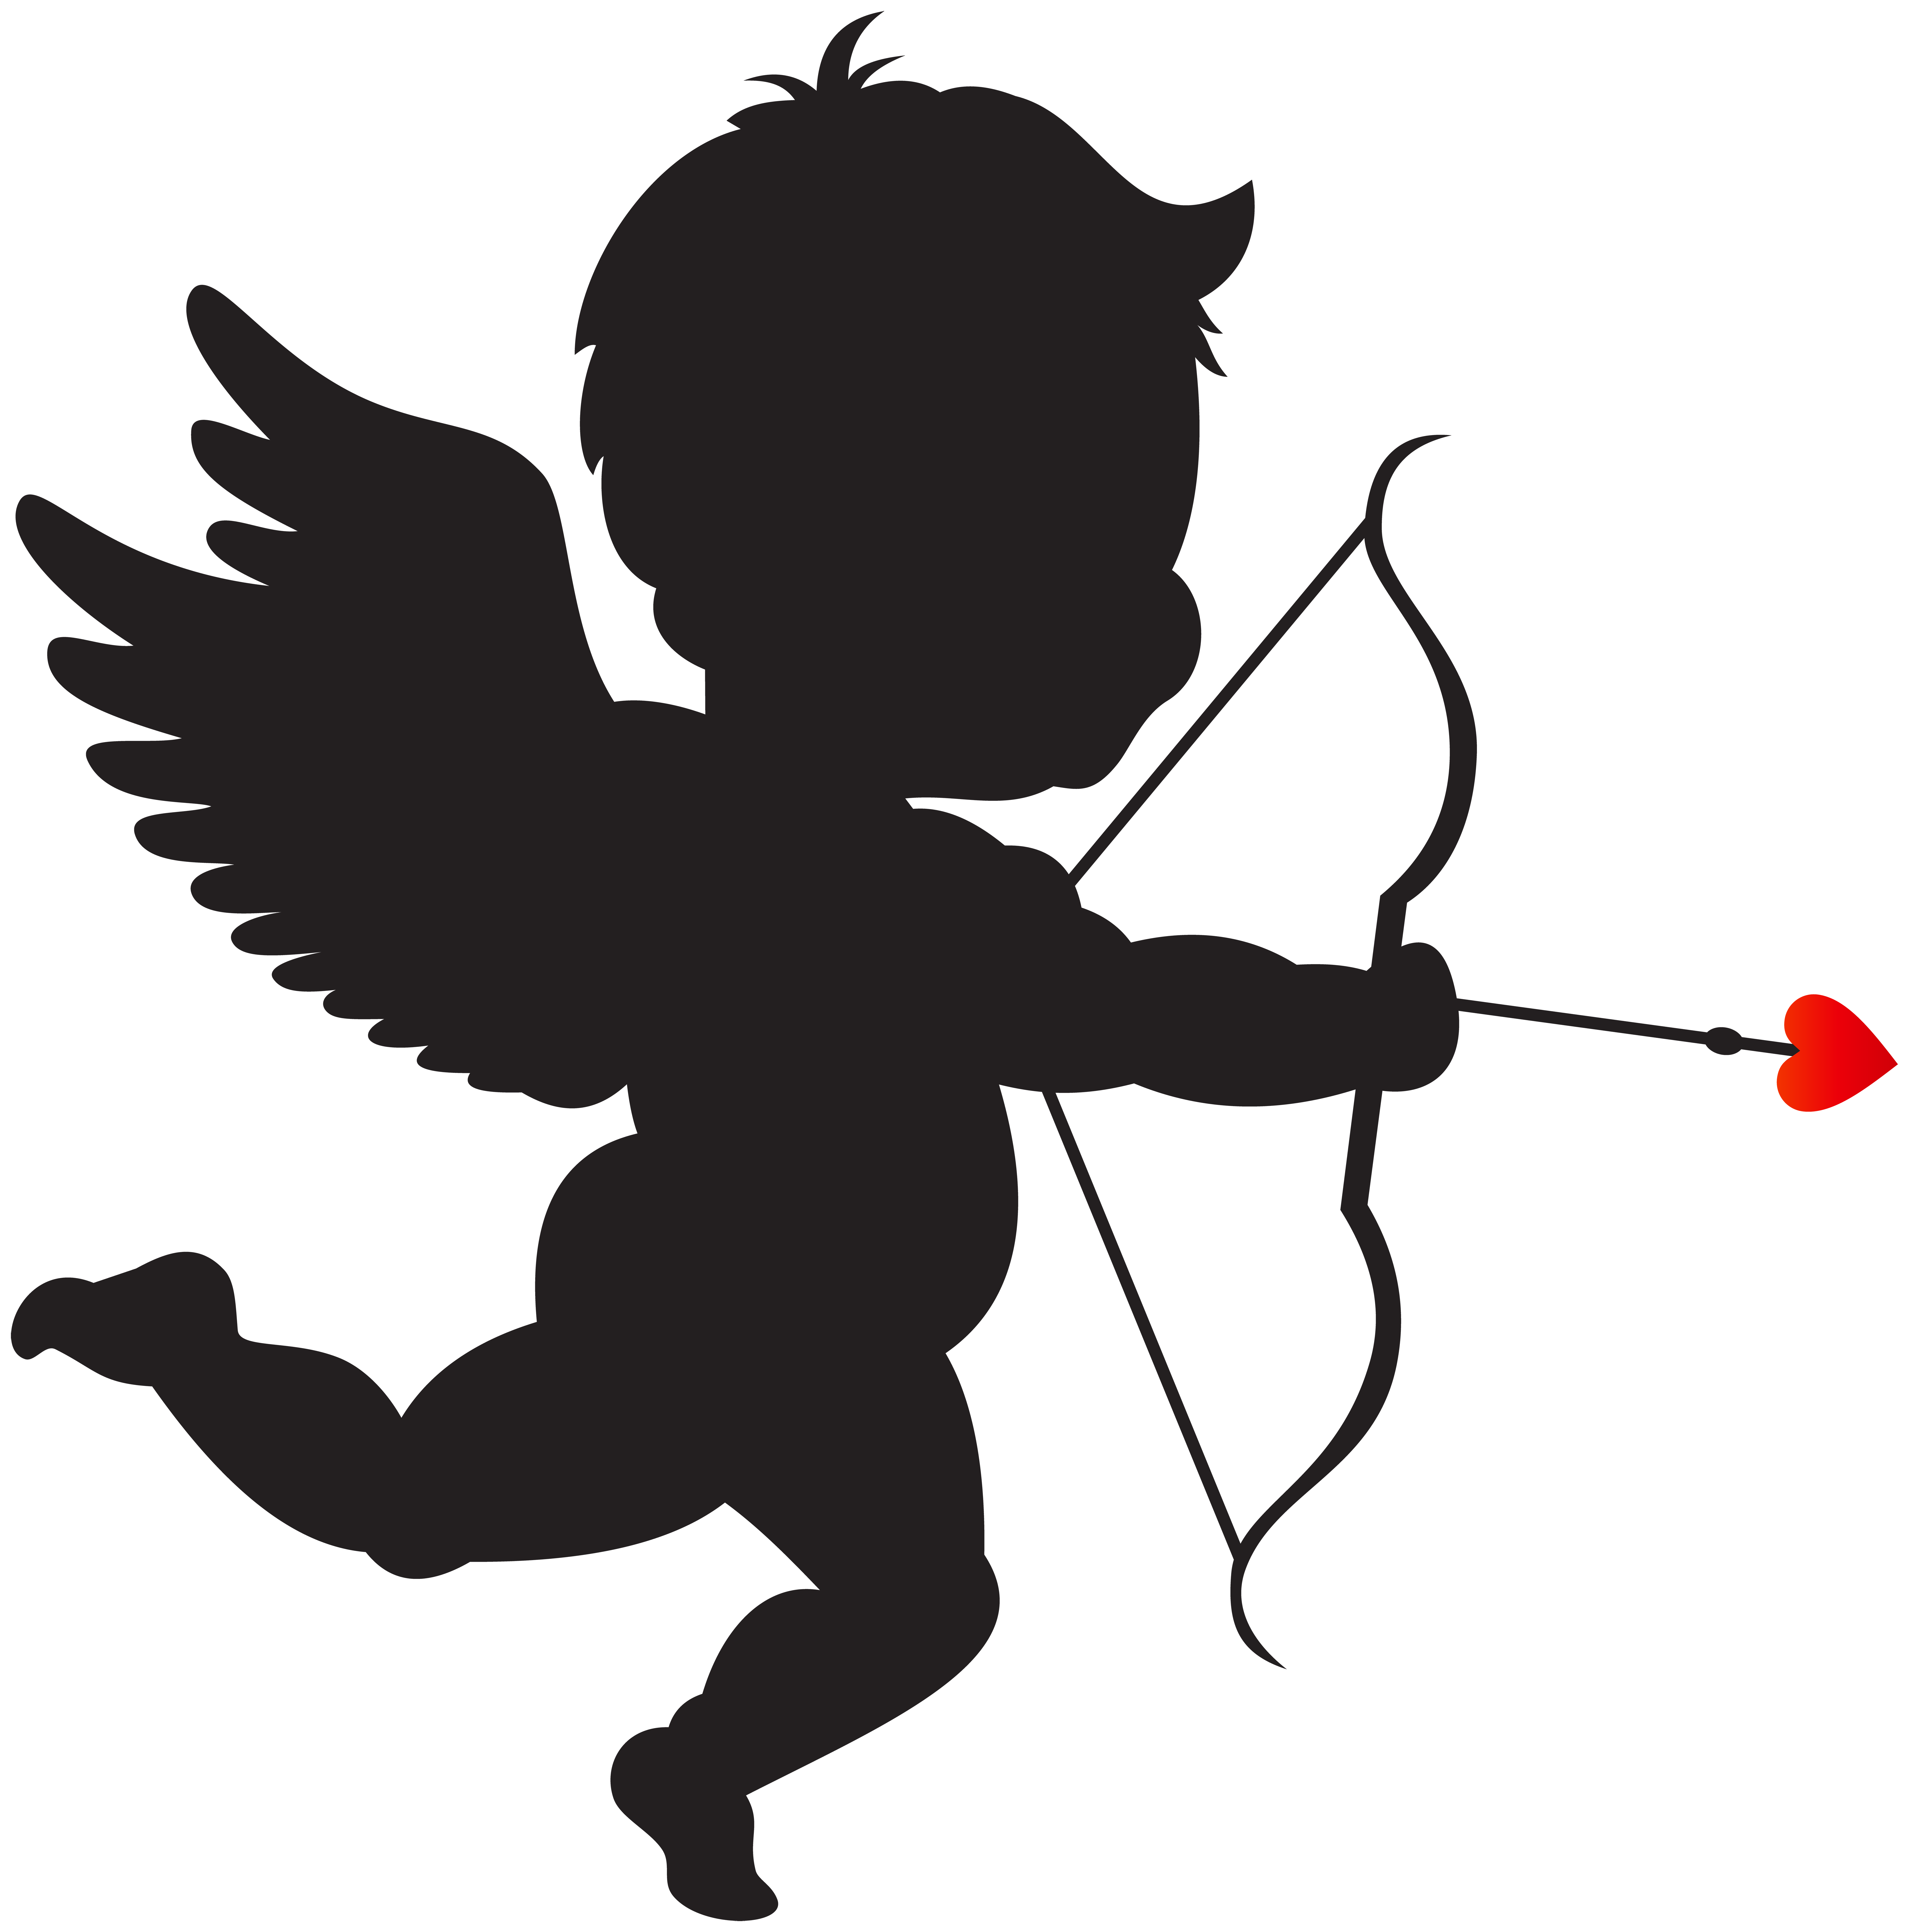 7904x8000 Cupid With Bow Silhouette Png Clip Art Imageu200b Gallery